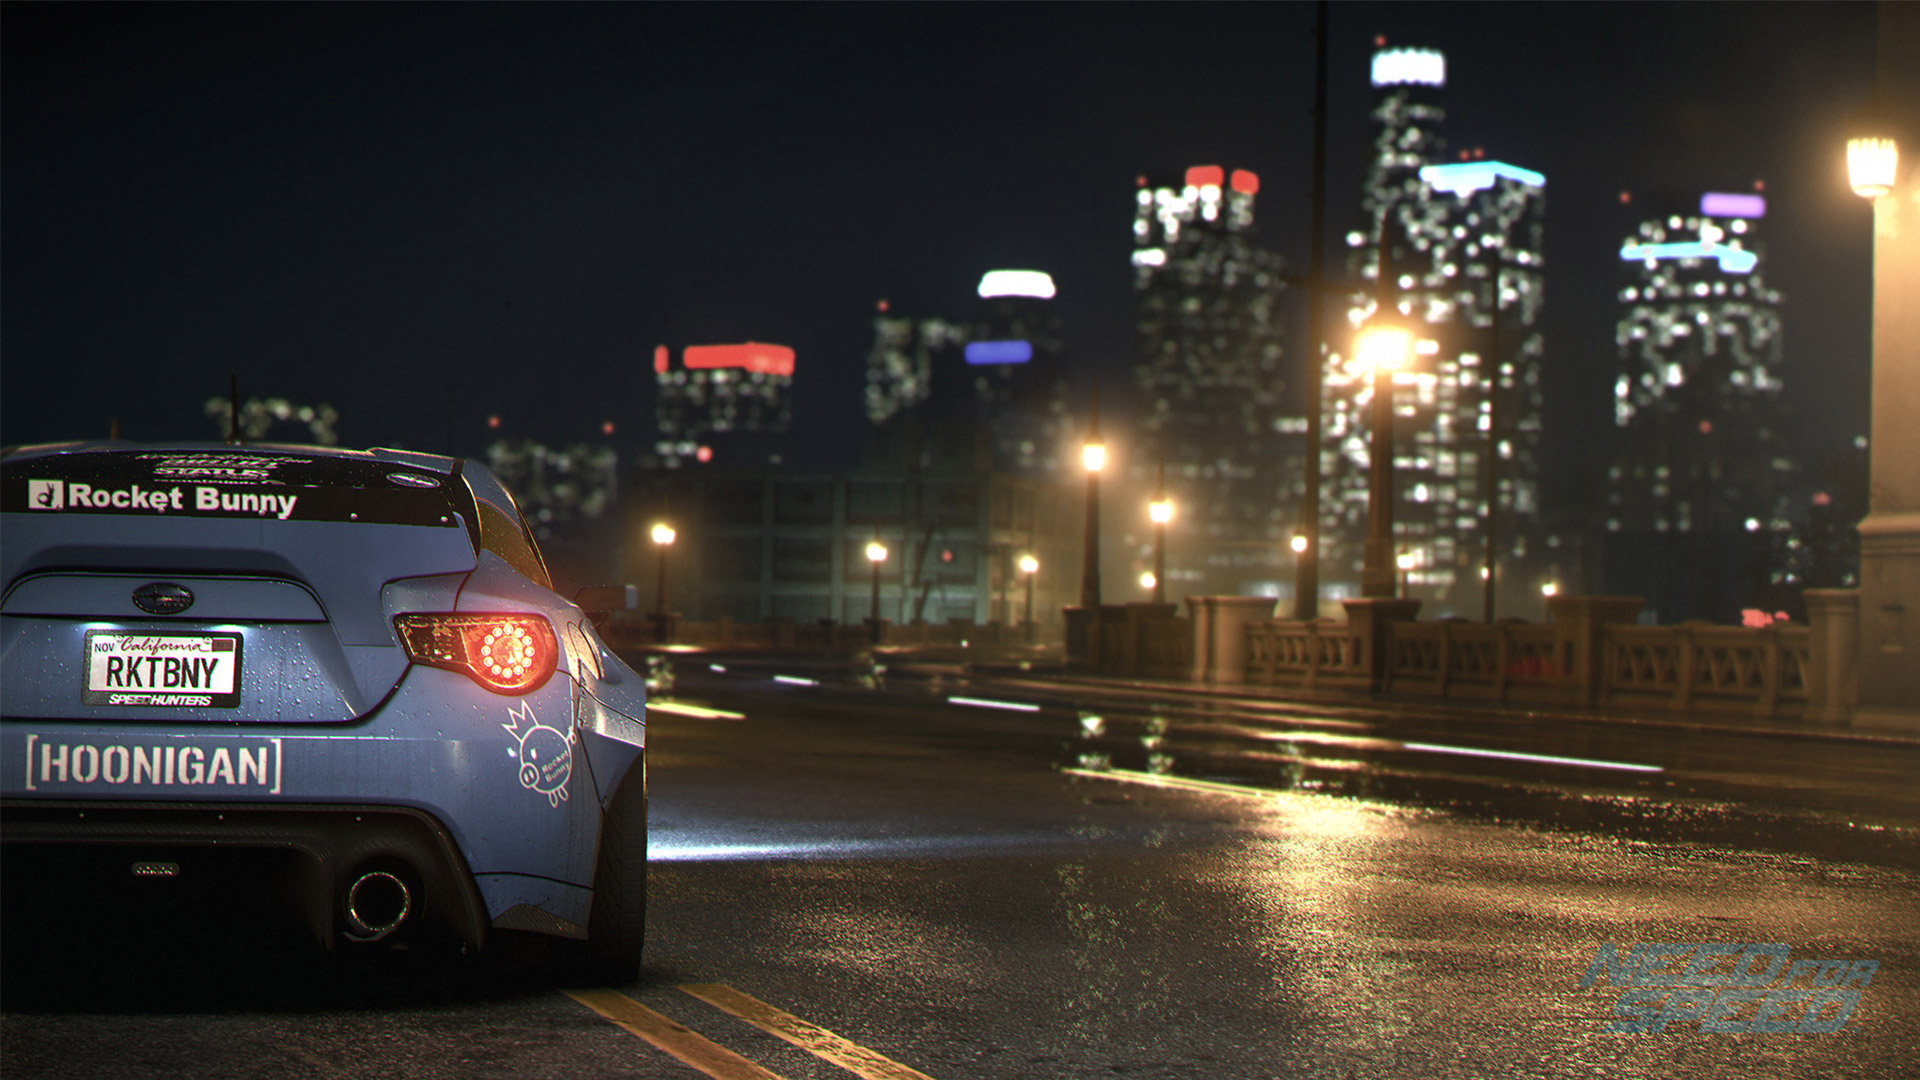 Free Need for Speed Wallpaper in 1920x1080